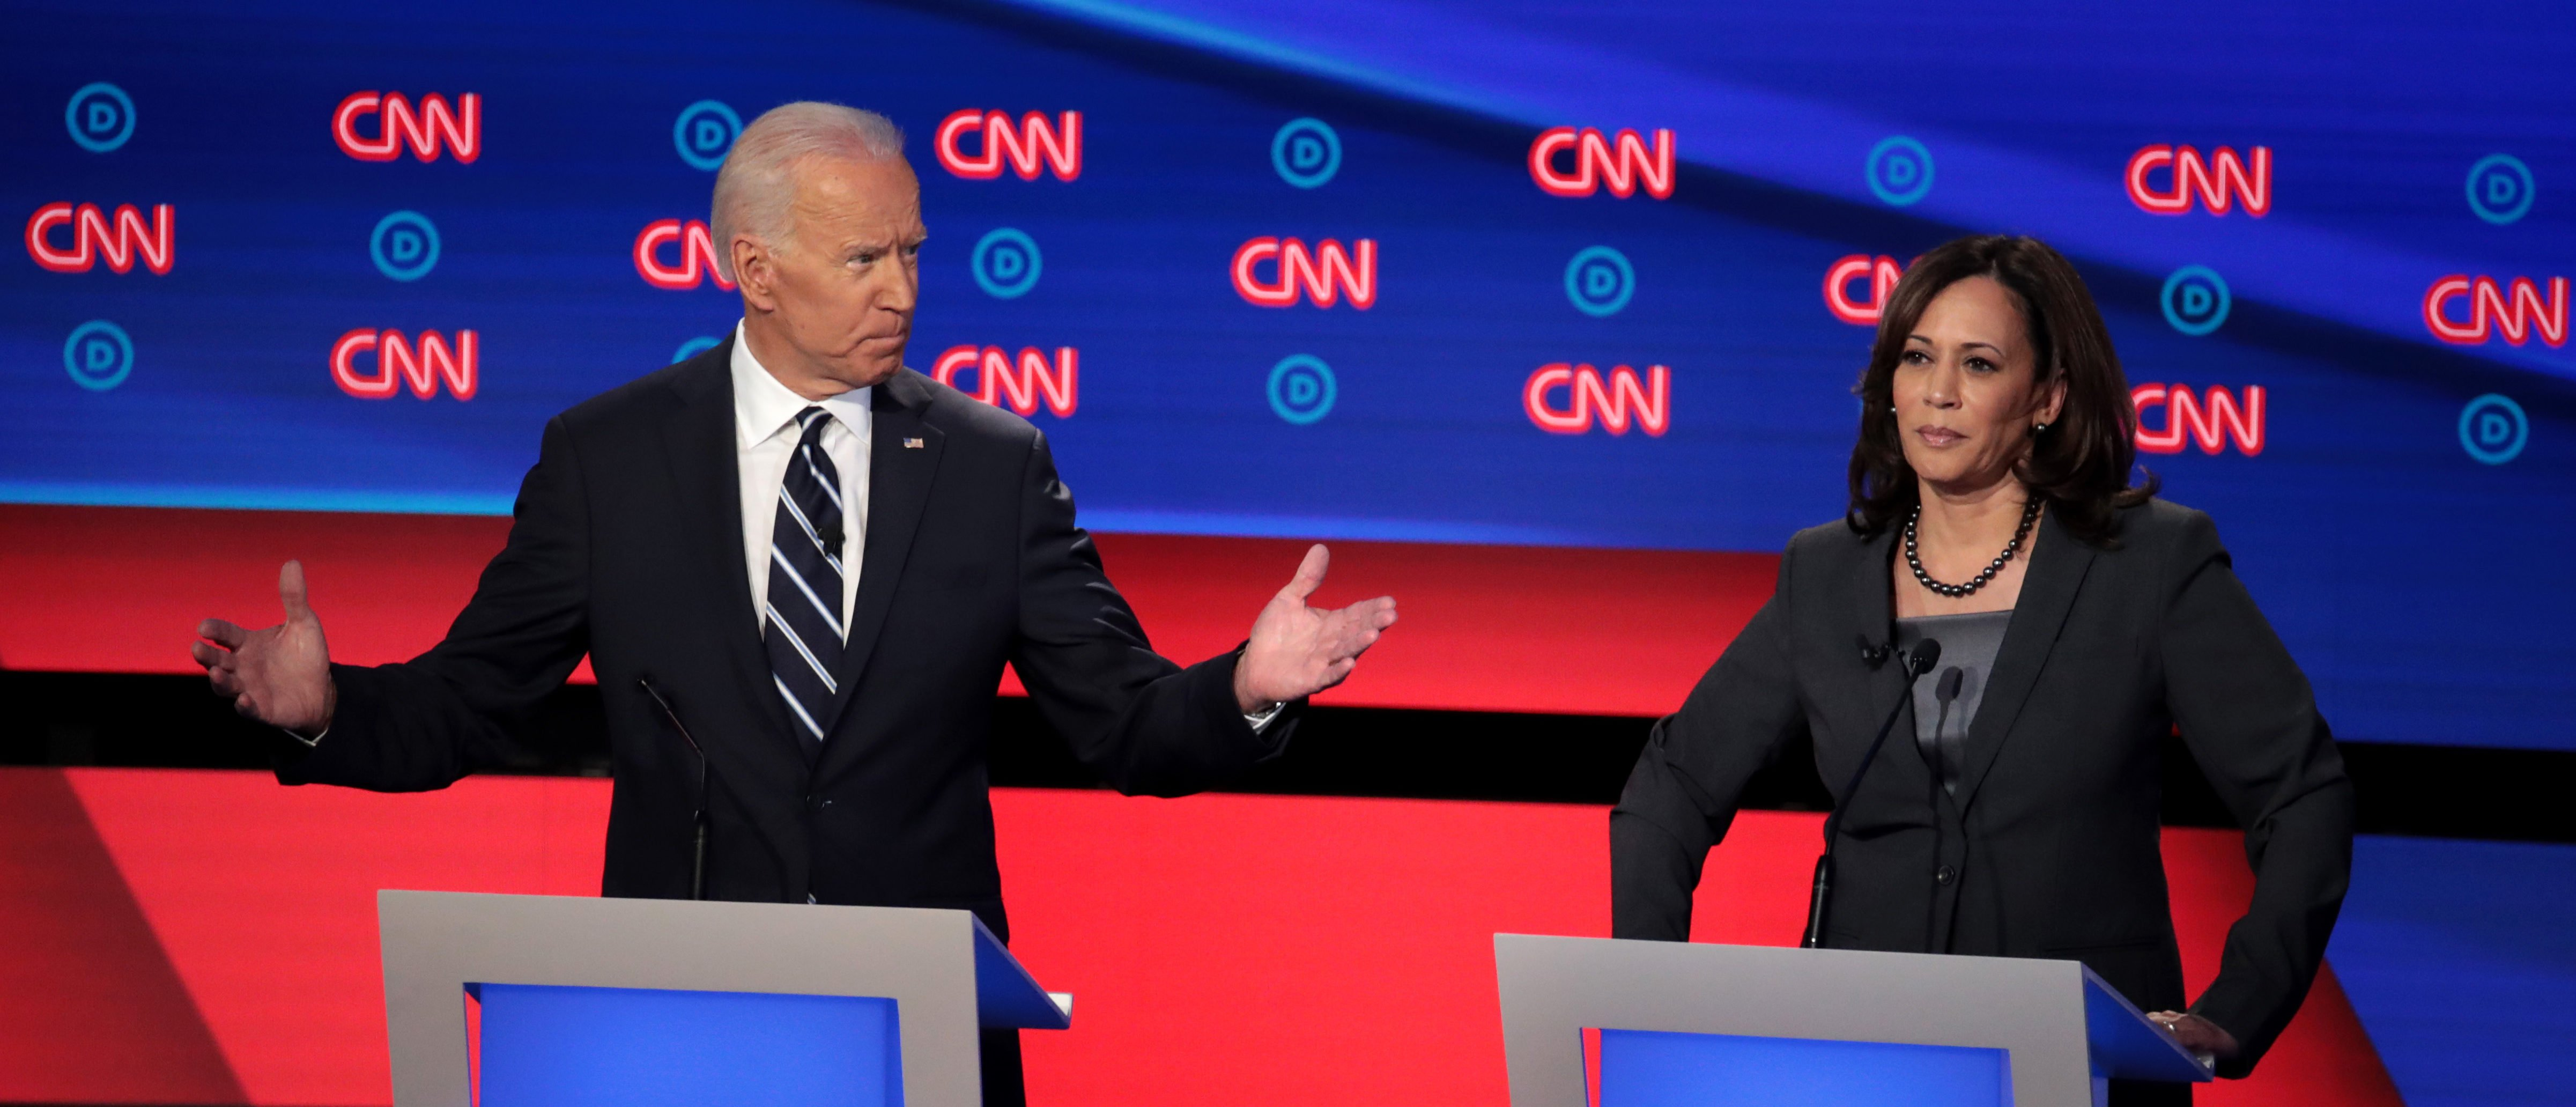 Democratic presidential candidate Joe Biden (L) speaks while Sen. Kamala Harris listens during the Democratic presidential debate at the Fox Theatre July 31, 2019 in Detroit, Michigan. (Scott Olson/Getty Images)